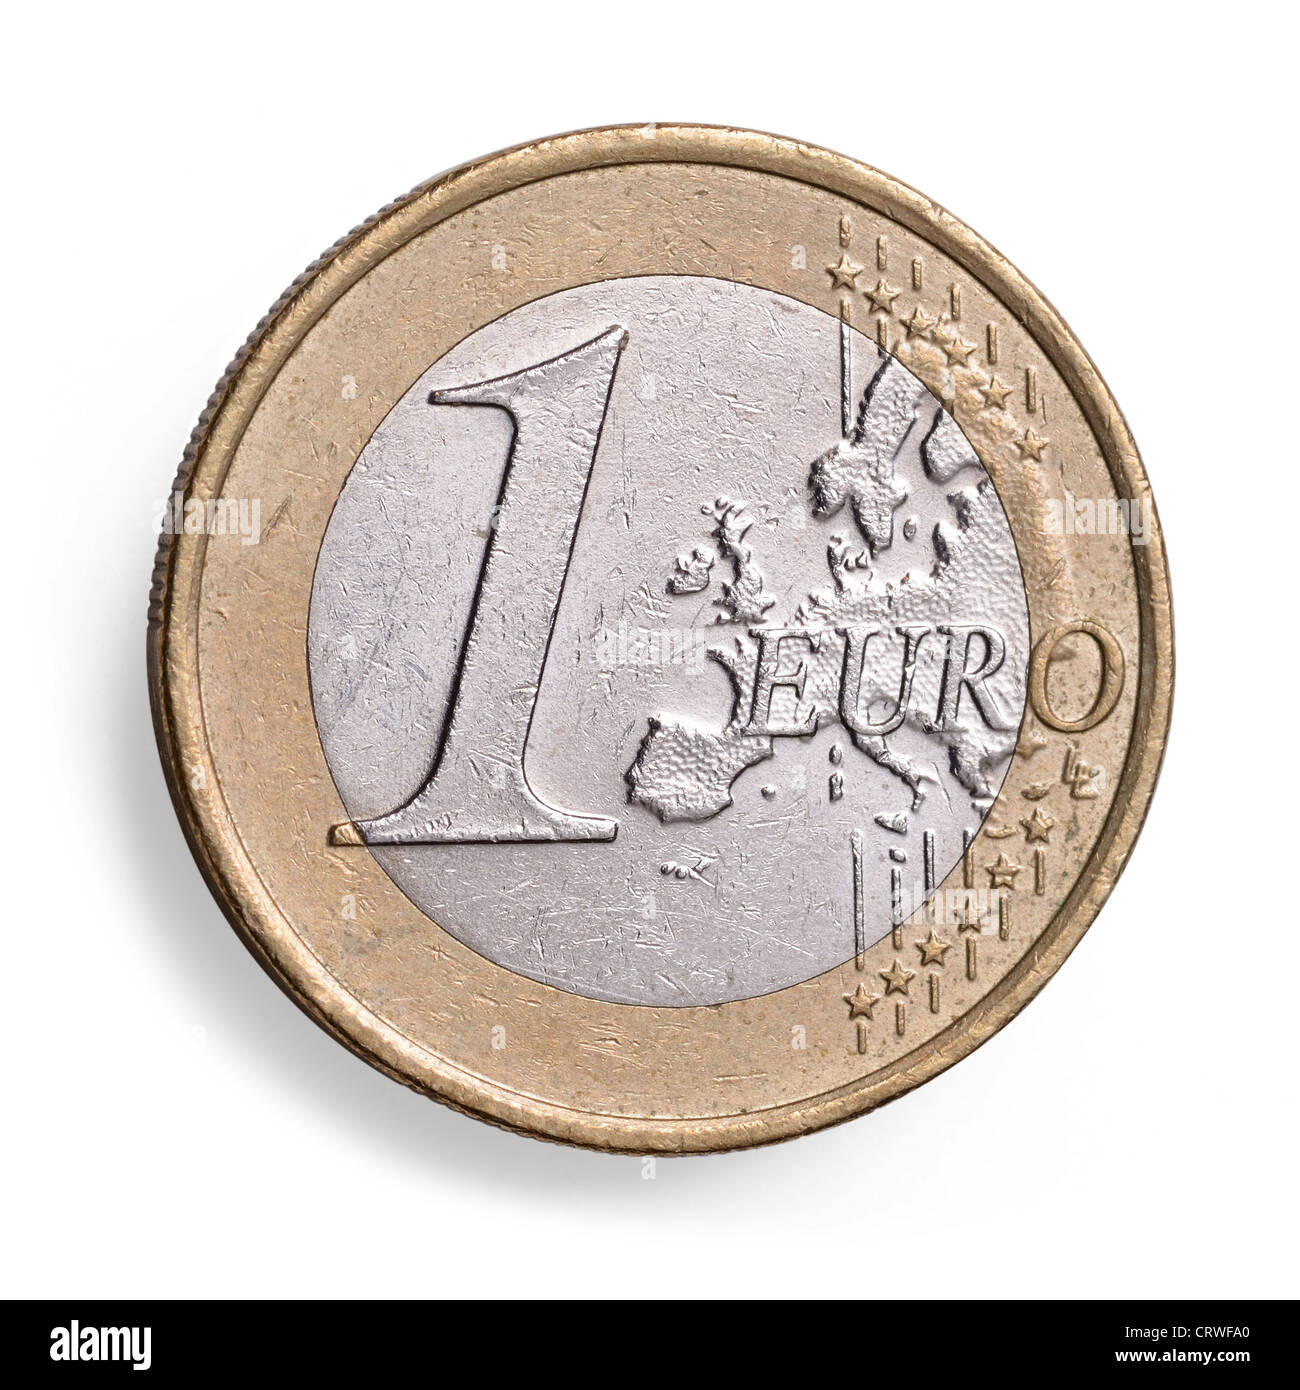 1 One Euro coin - Stock Image